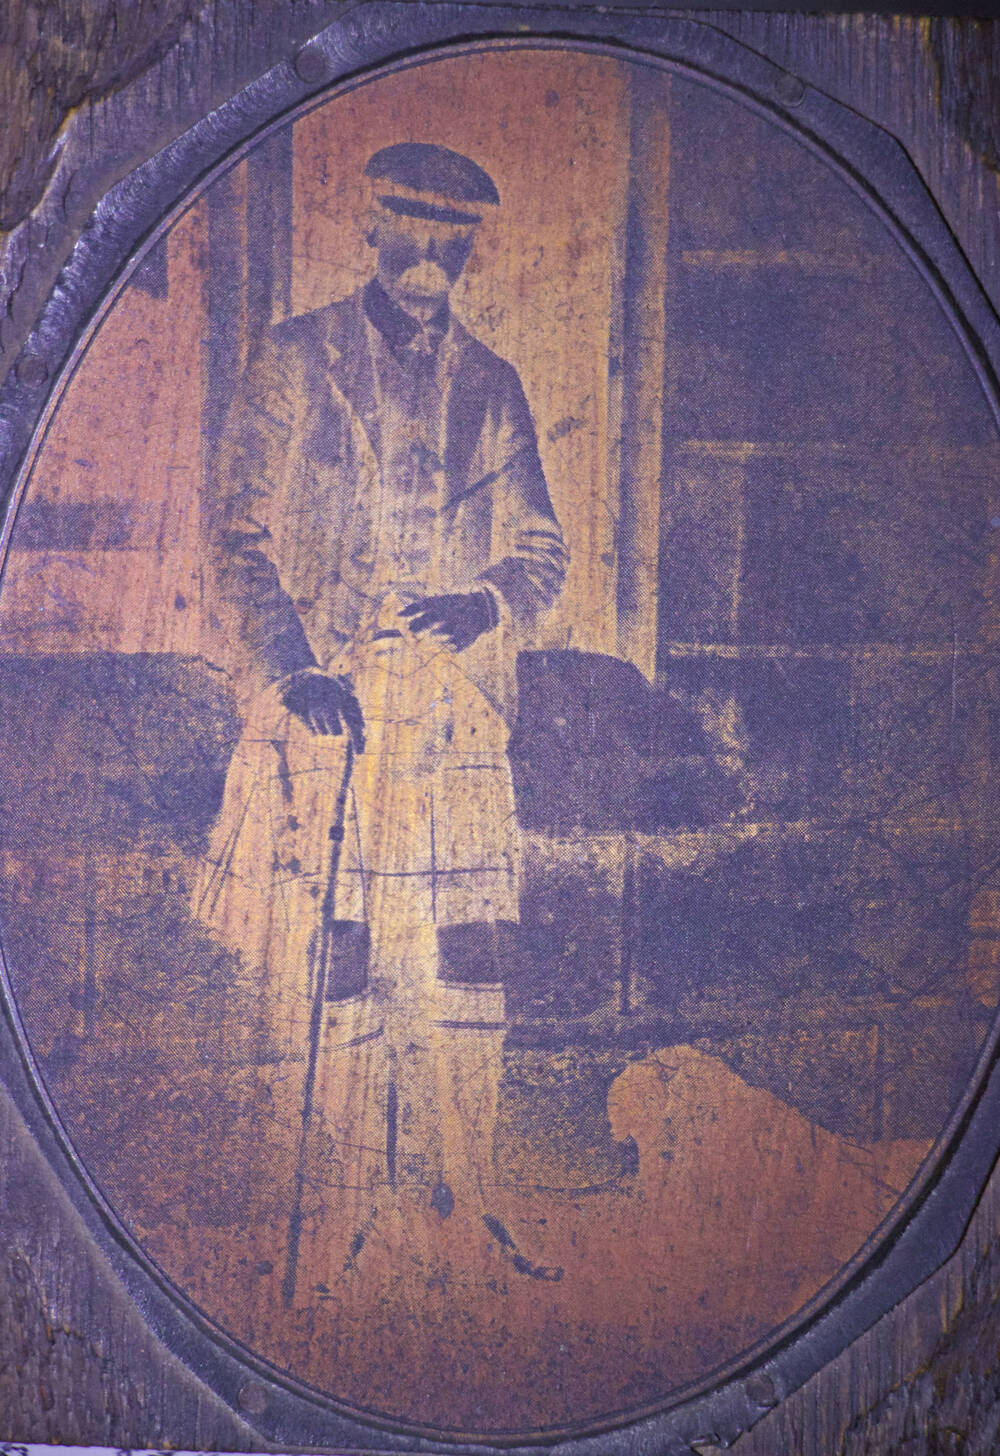 Negative image of a kilted man, holding a walking stick